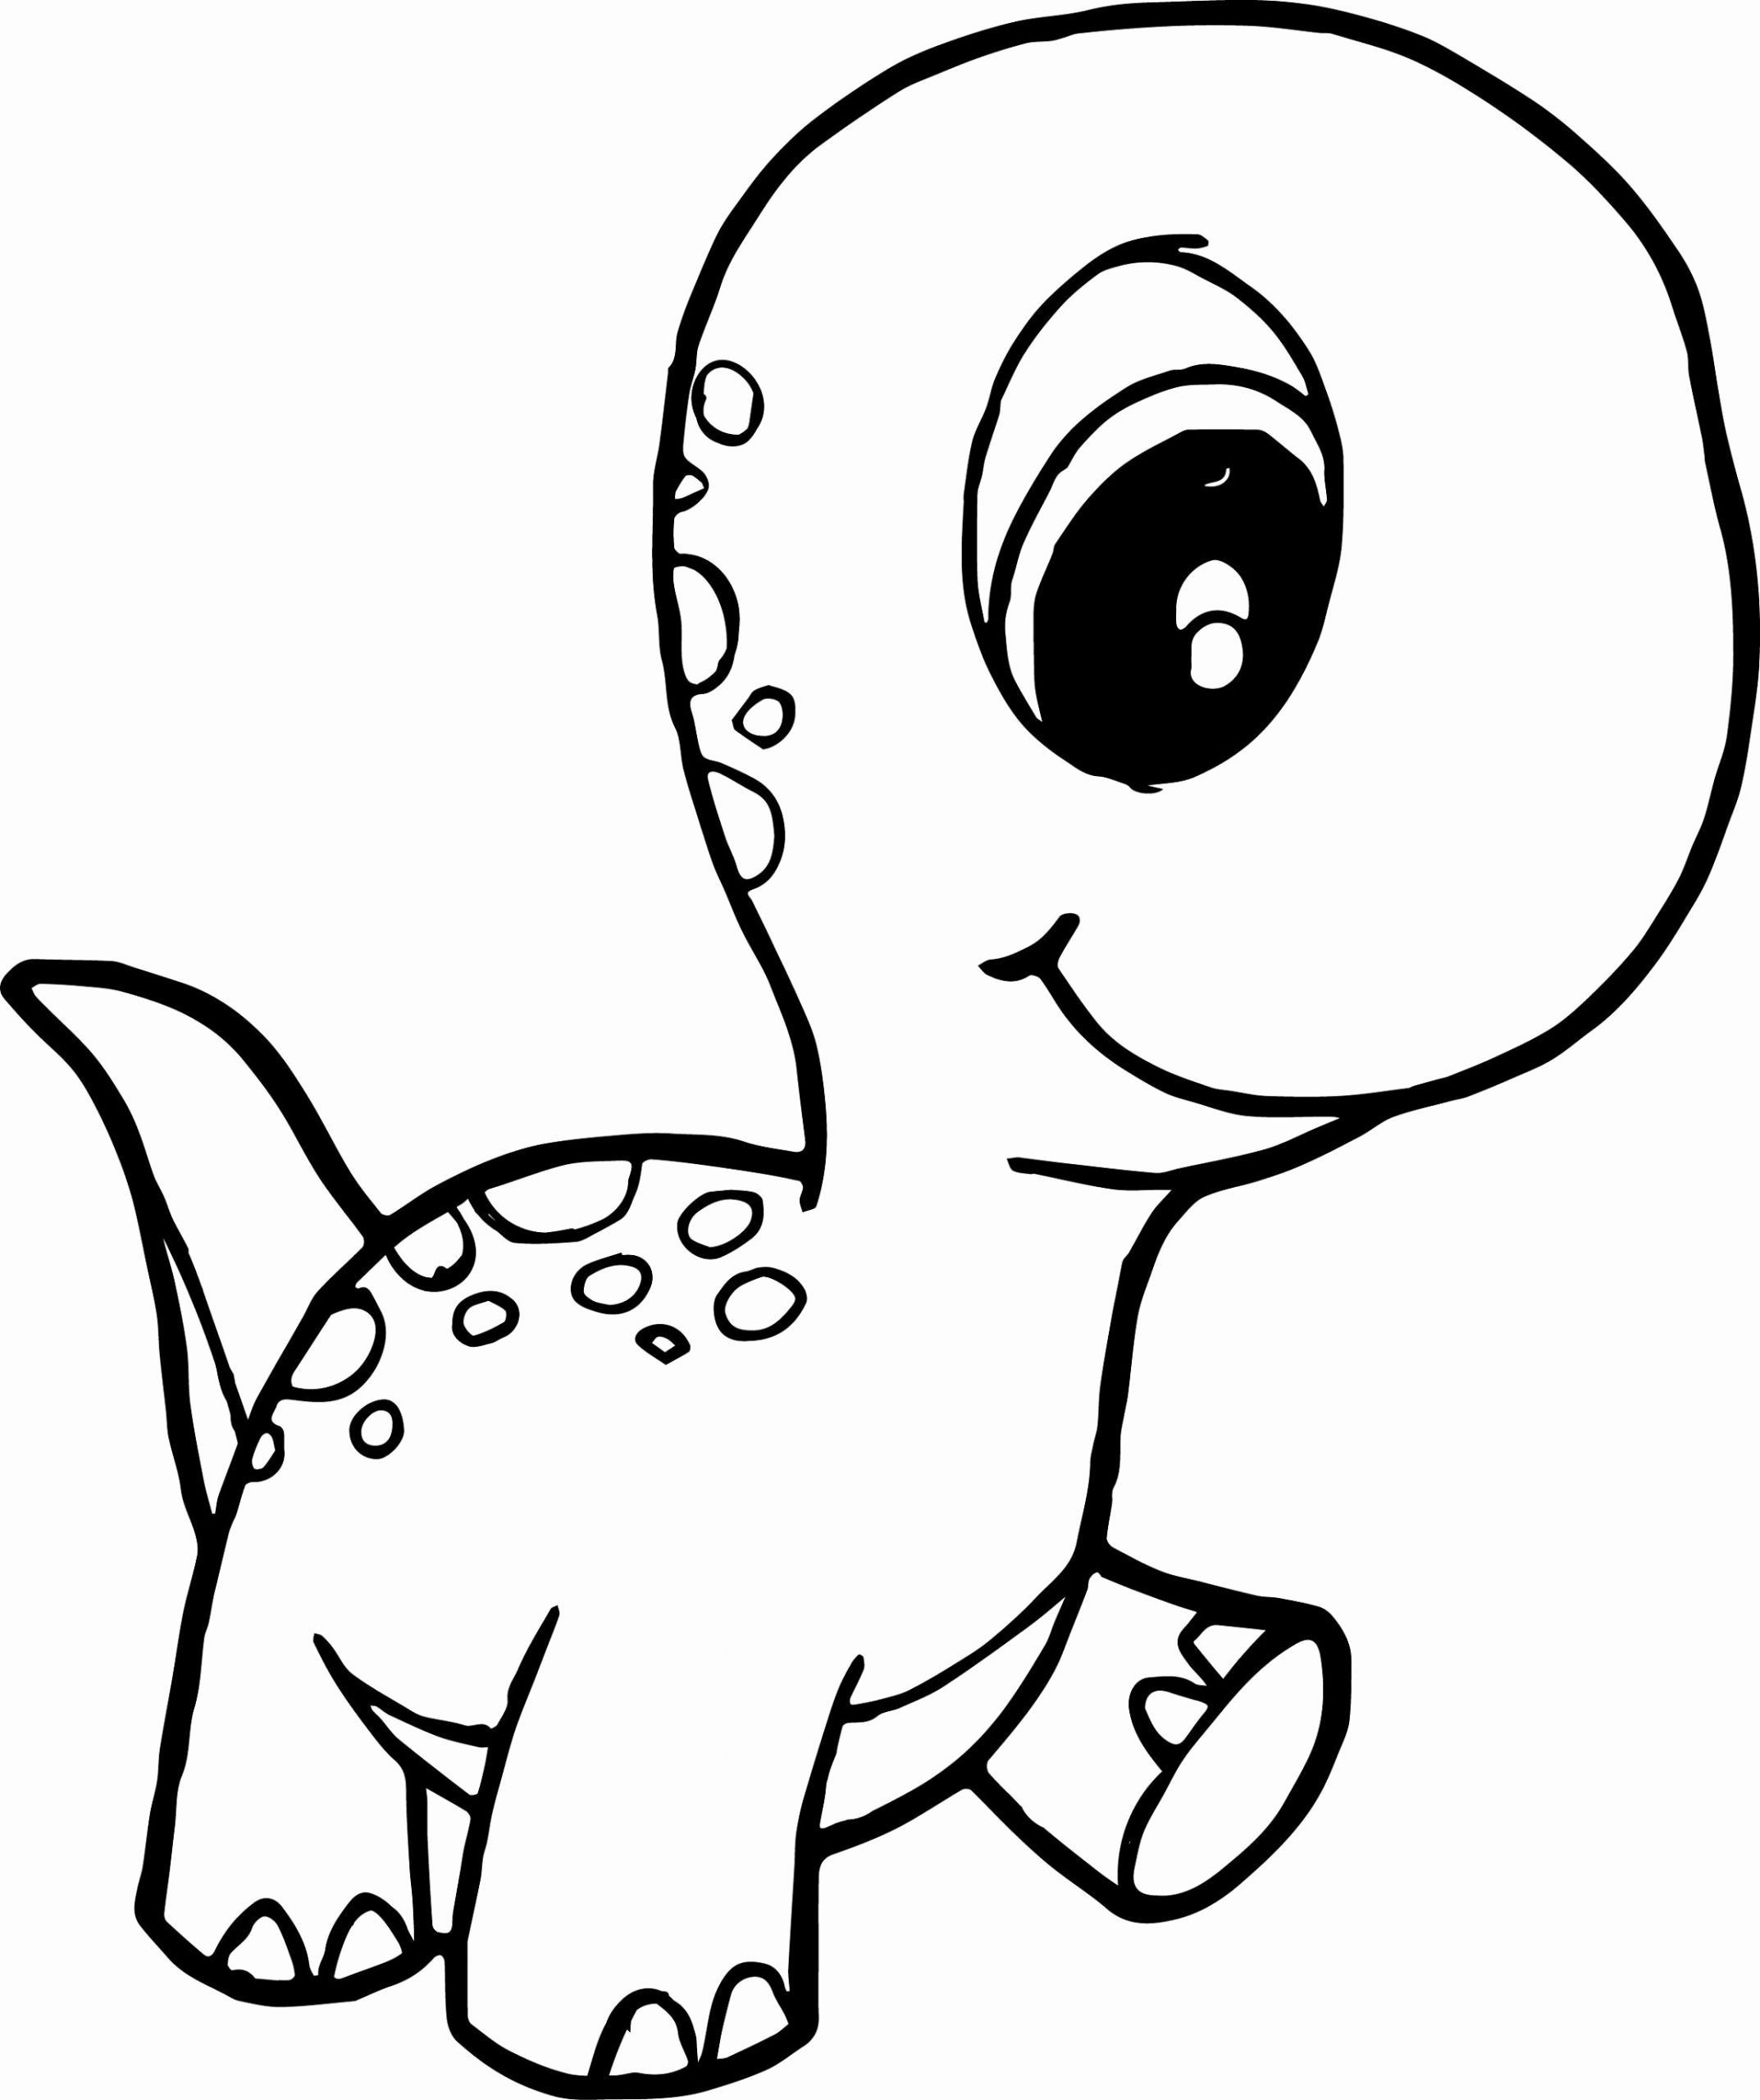 Cute Baby Animal Coloring Pages In 2020 Dinosaur Coloring Pages